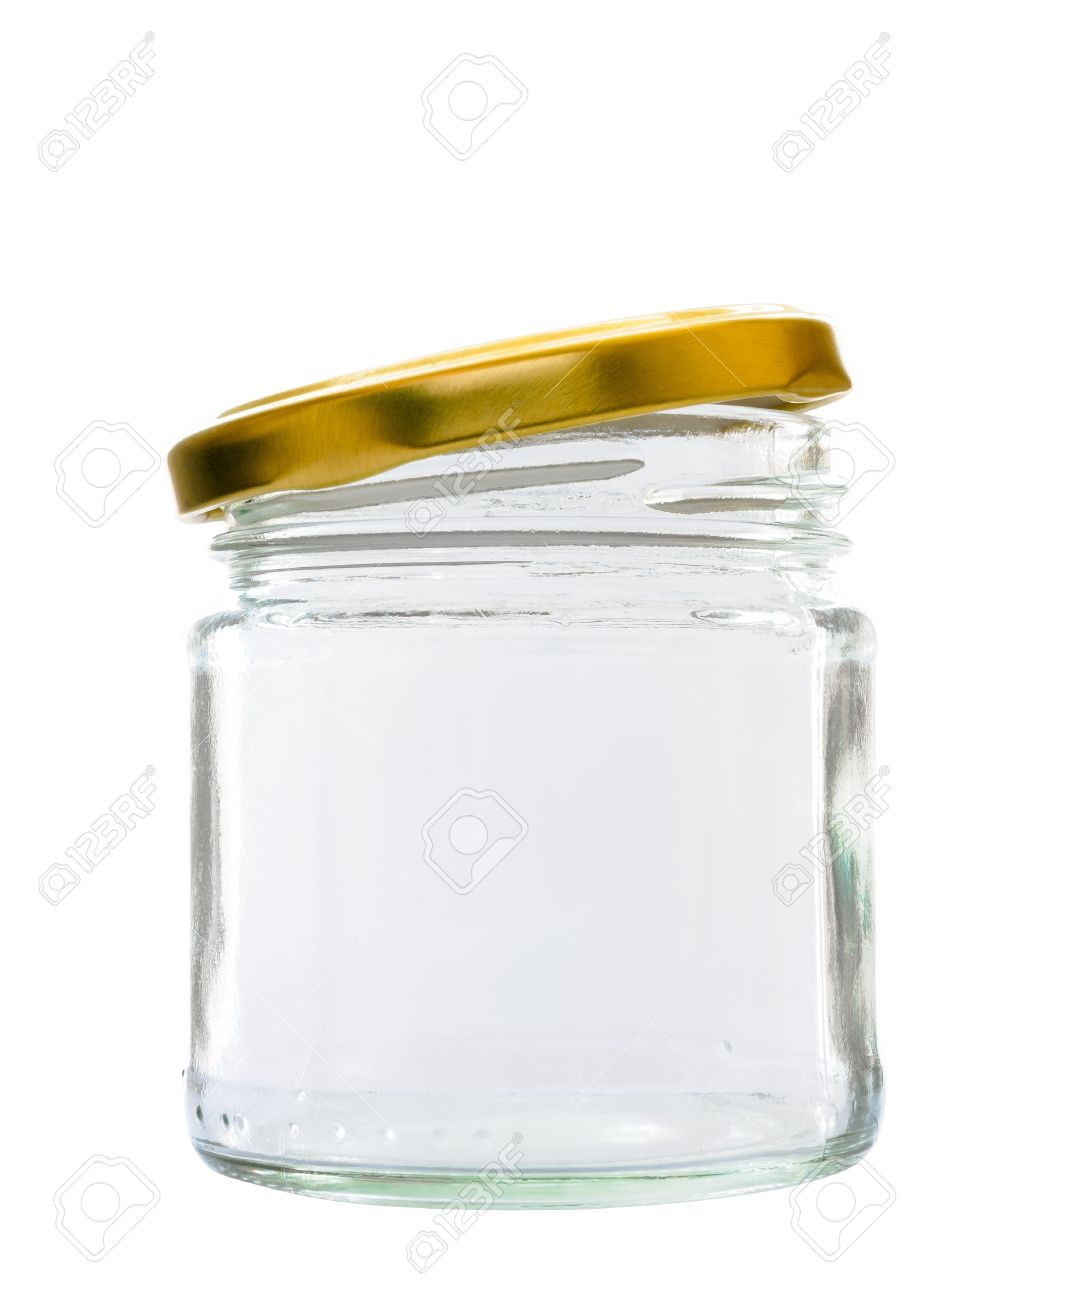 transparent glass jar on white background with the open gold